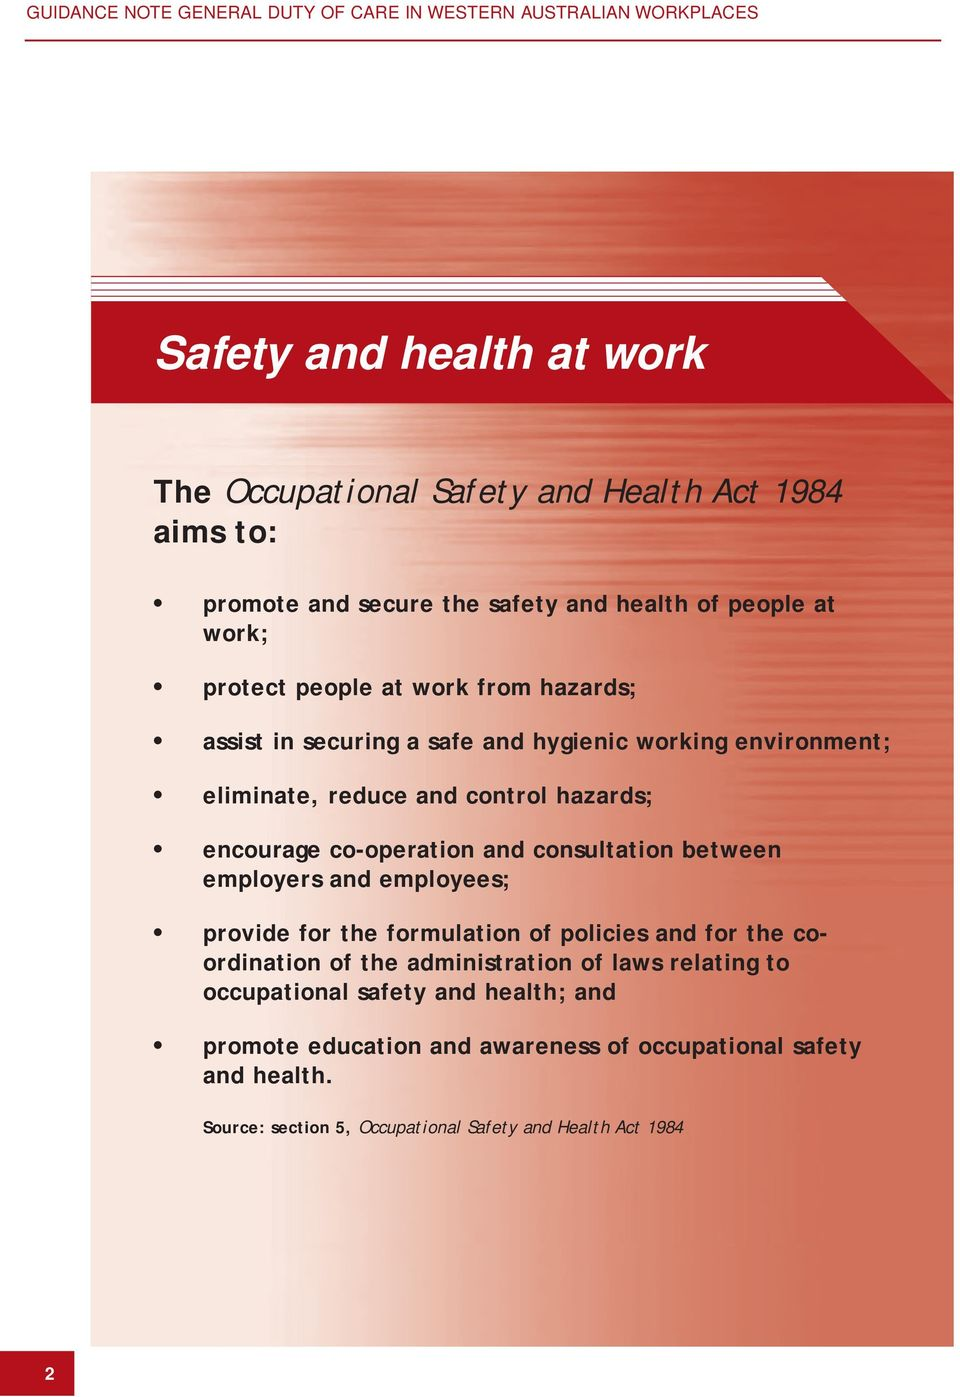 hazards; encourage co-operation and consultation between employers and employees; provide for the formulation of policies and for the coordination of the administration of